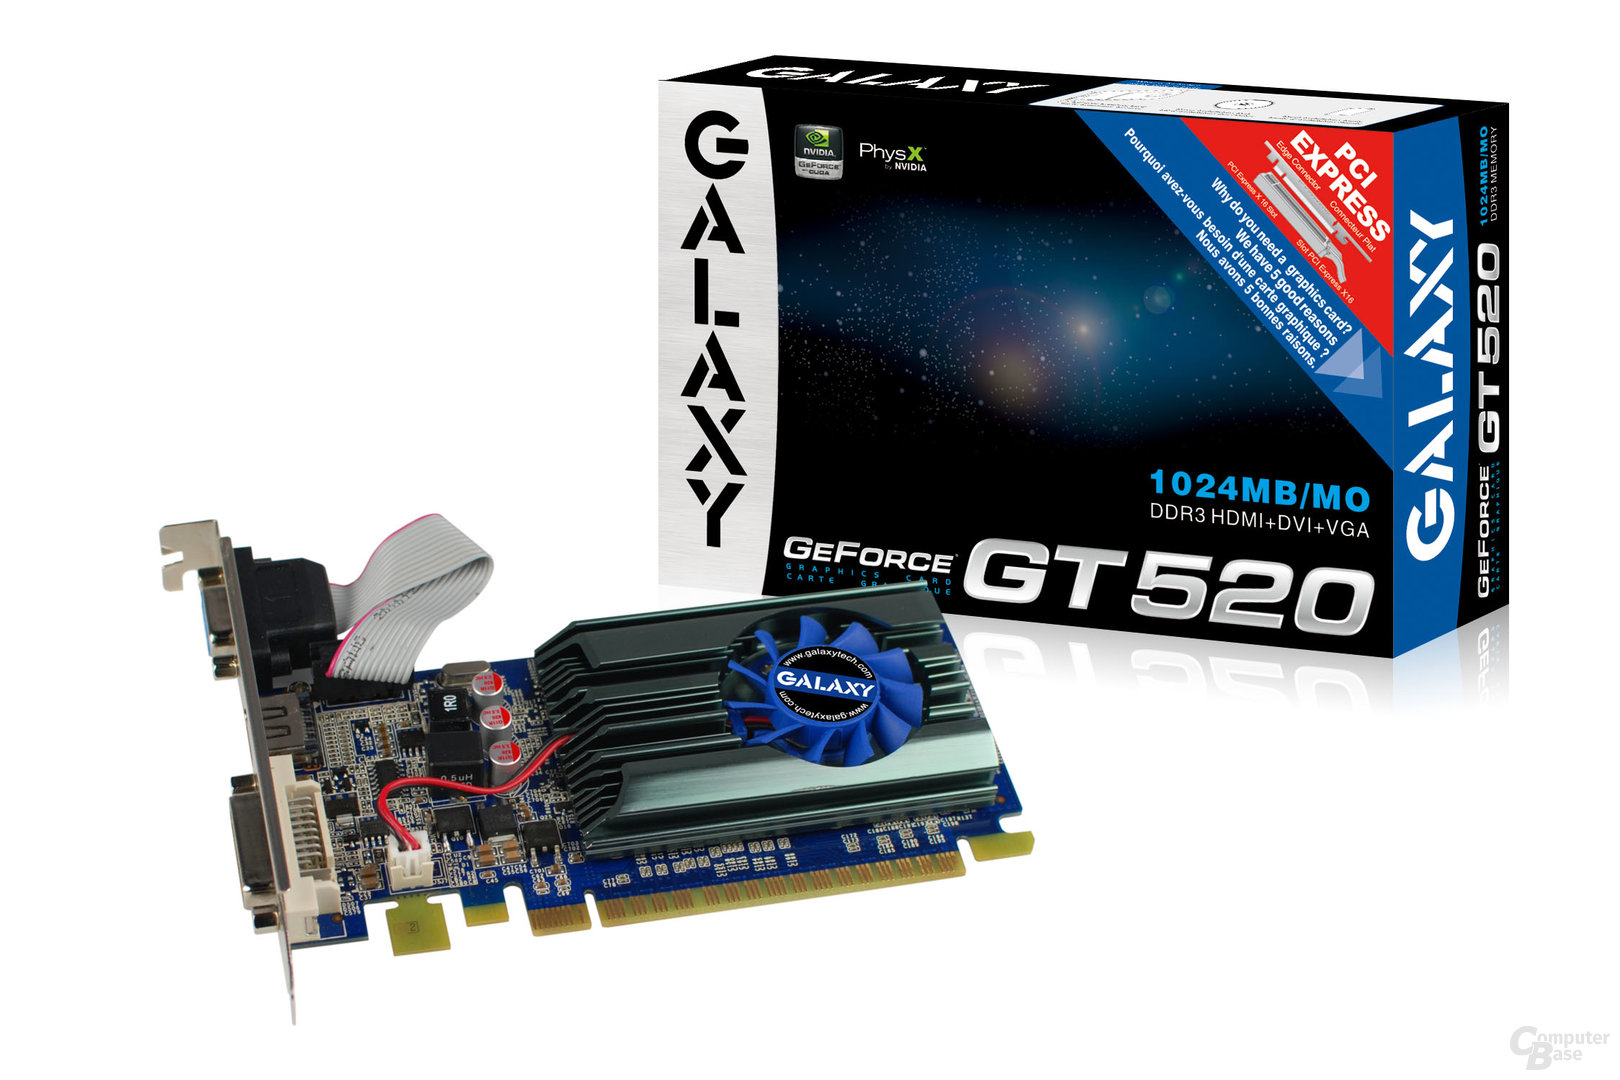 GeForce GT 520